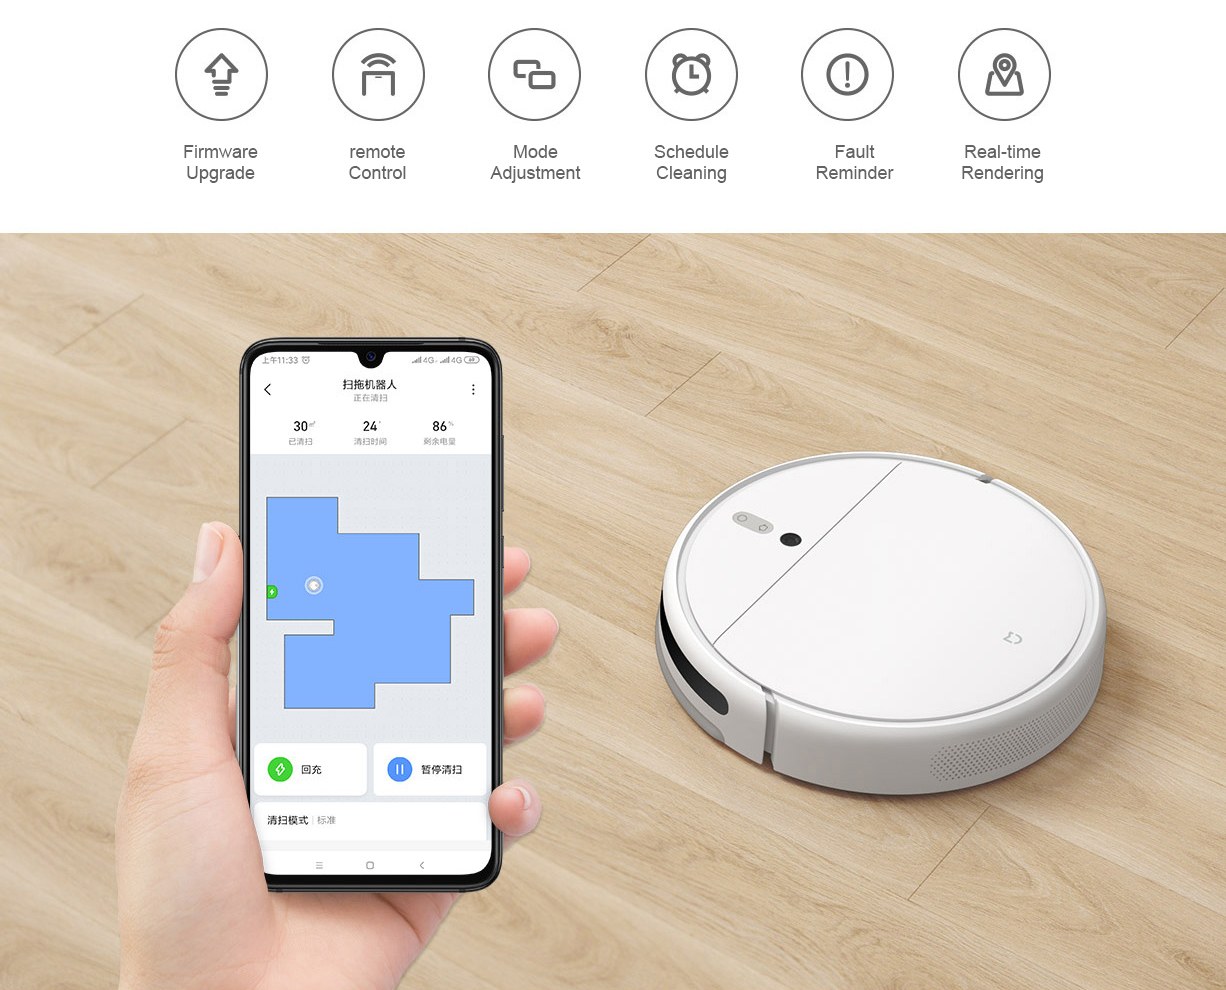 Hb38ccf6599e04687ac7711852efccf9e9 Xiaomi Mi Robot Vacuum Cleaner 1C Sweeping Mopping STYTJ01ZHM for Home Automatic Dust Sterilize Smart Planned Cleaner